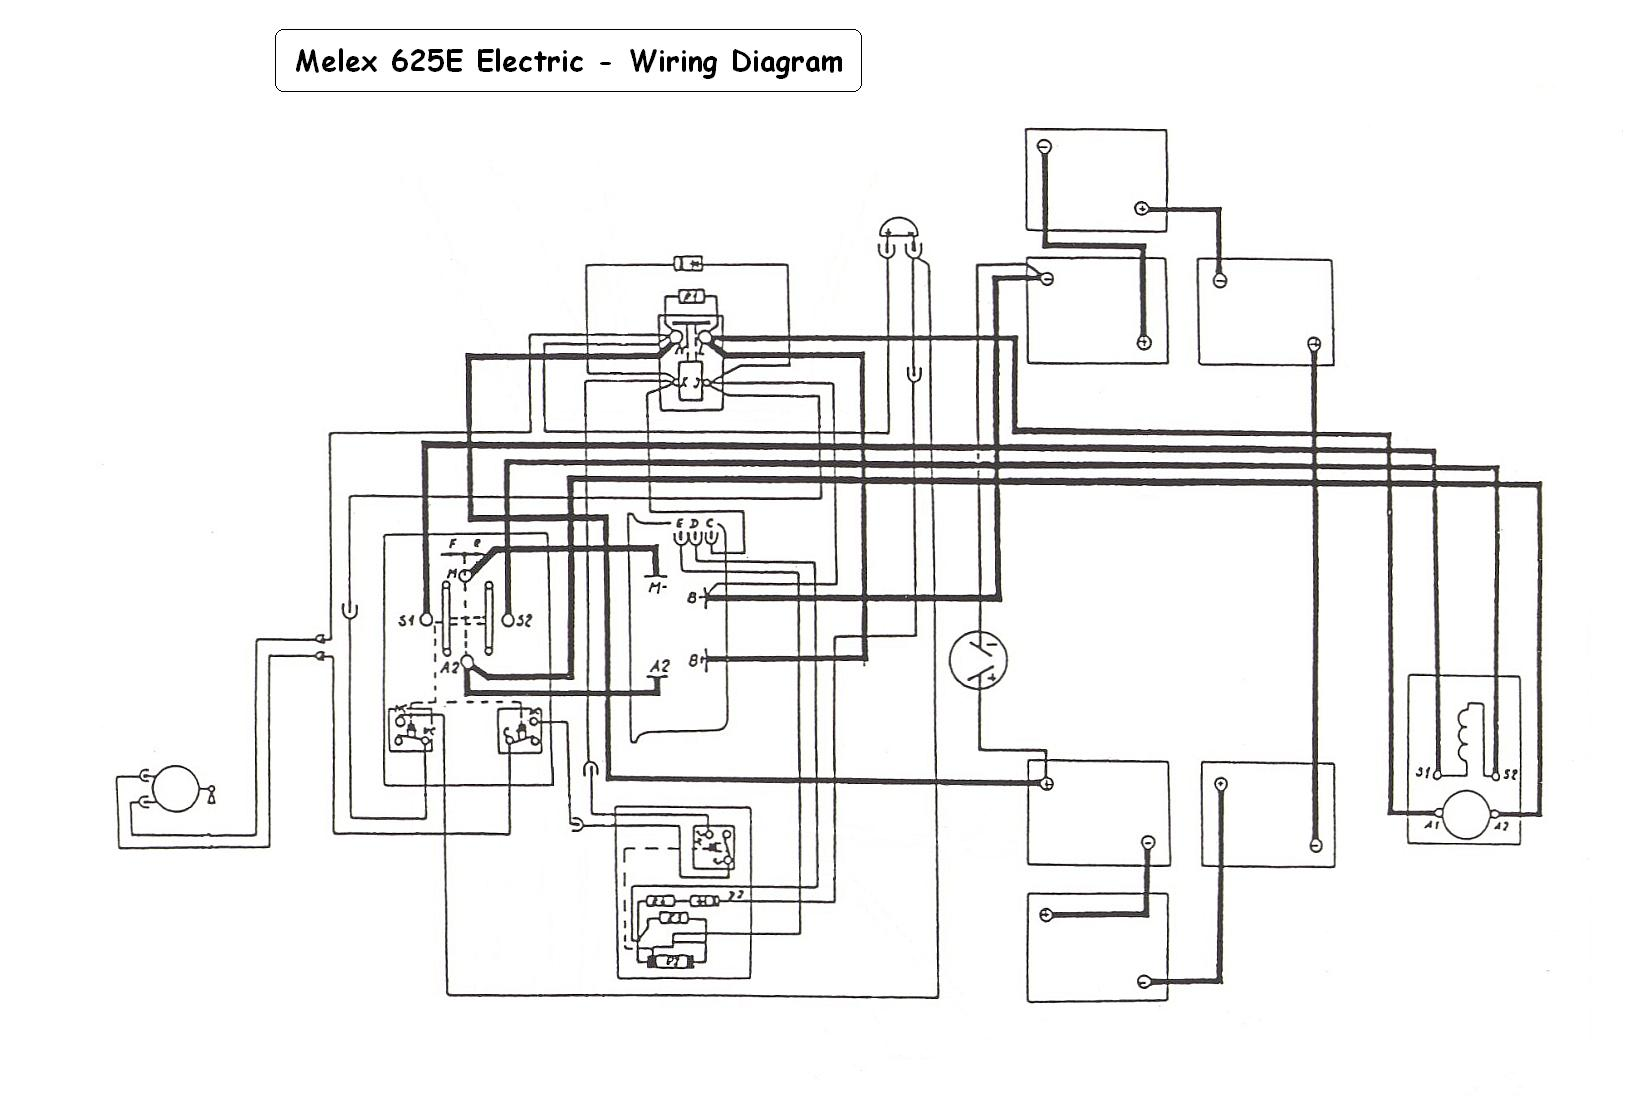 hight resolution of melex wiring diagram 112 and 212 32 wiring diagram club cart wiring schematics melex 212 wiring